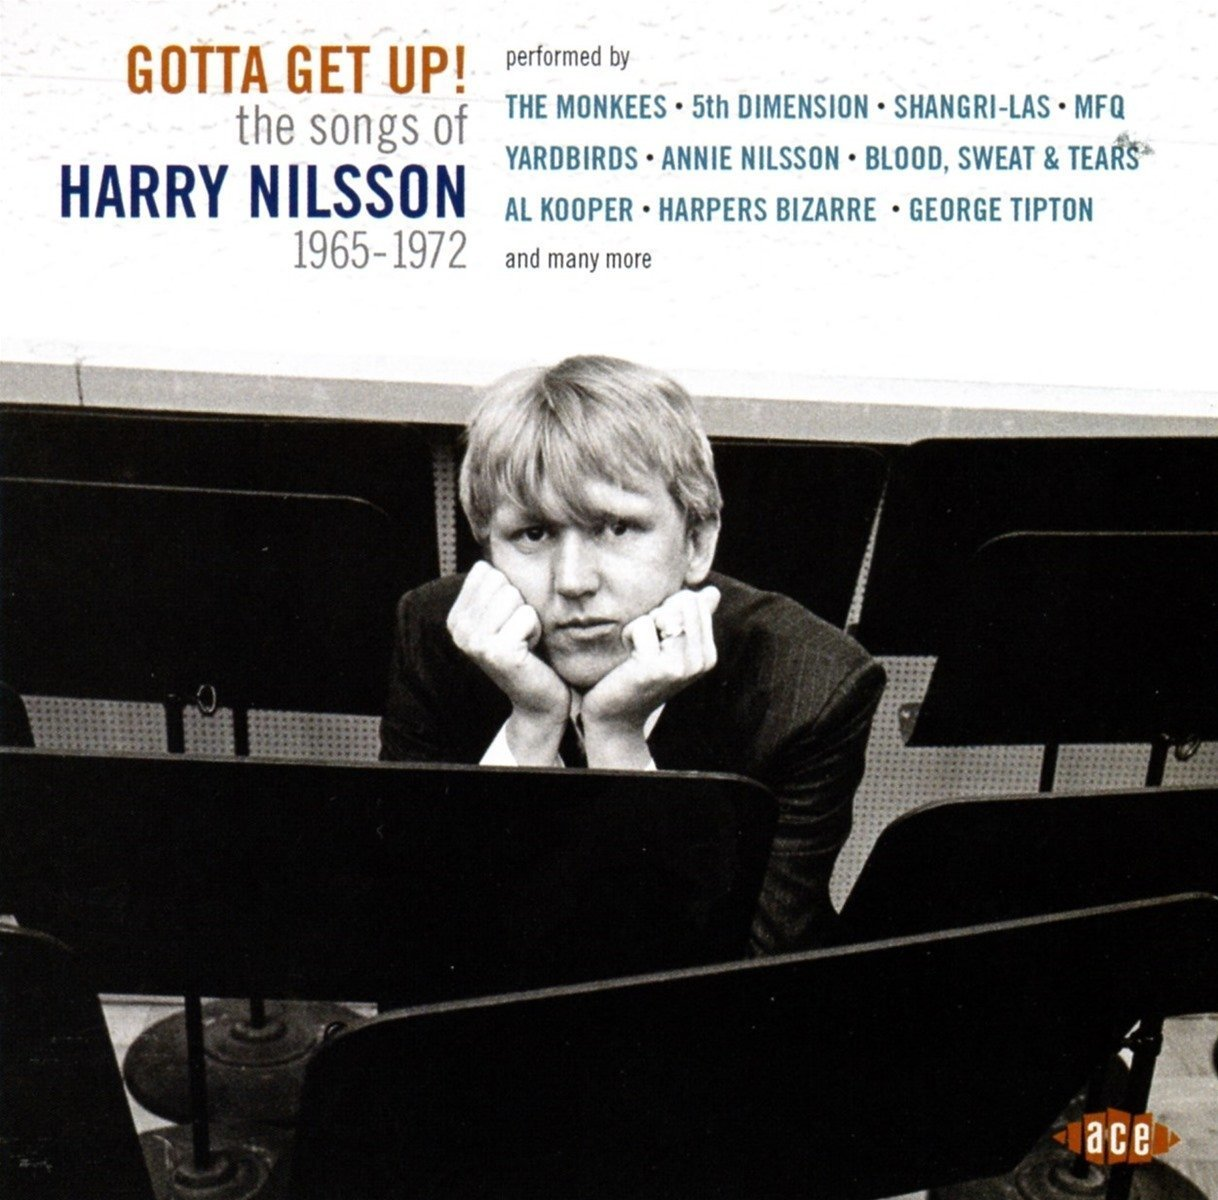 The Songs of Harry Nilsson 1965-1972 by Gotta Get Up! image